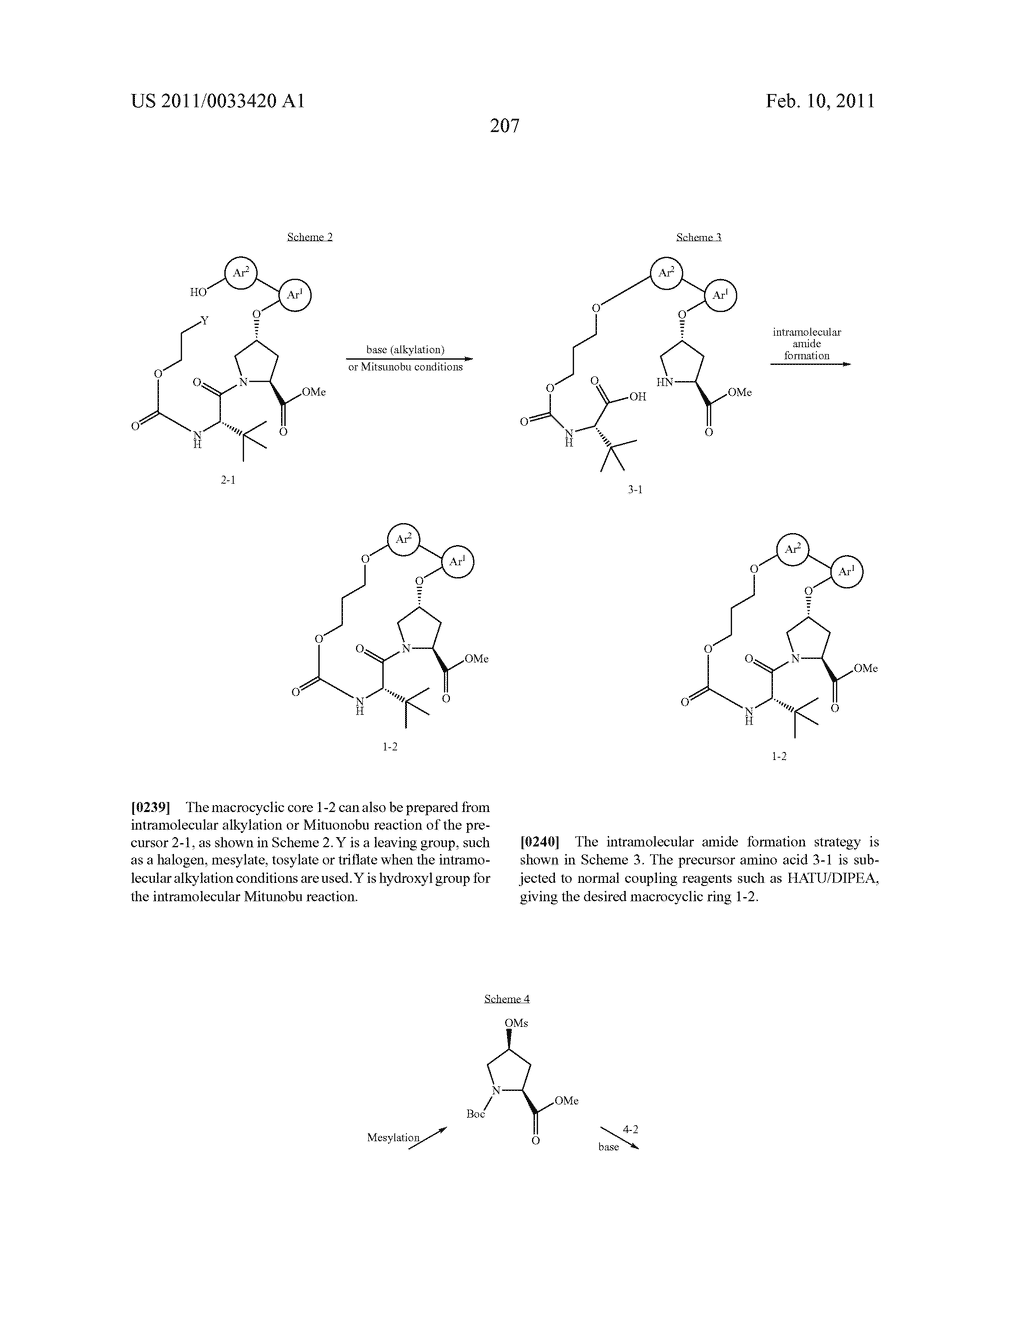 MACROCYCLIC COMPOUNDS AS HEPATITIS C VIRUS INHIBITORS - diagram, schematic, and image 208